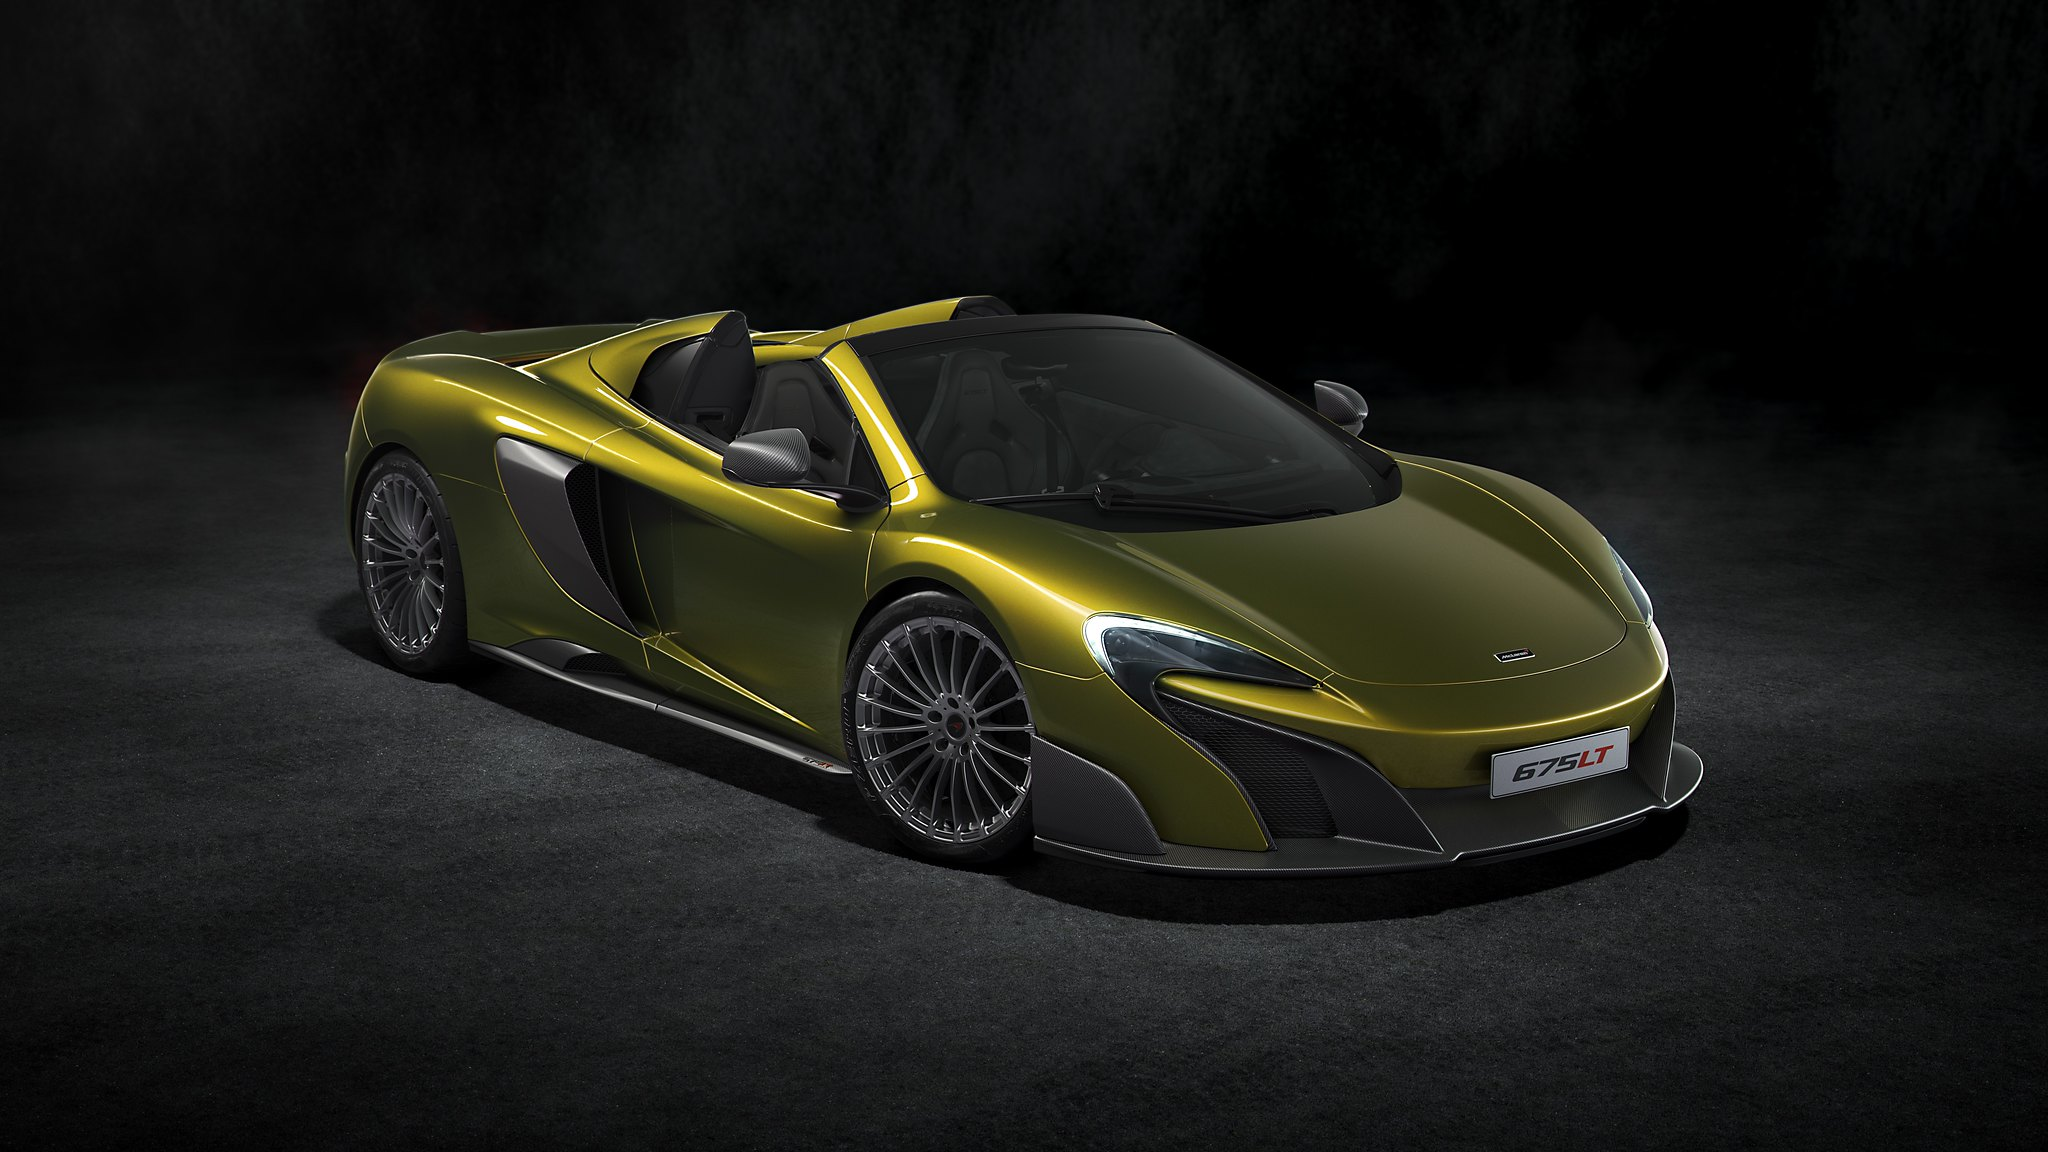 McLaren 675LT Spider opens the most engaging and exhilarating model up to the elements